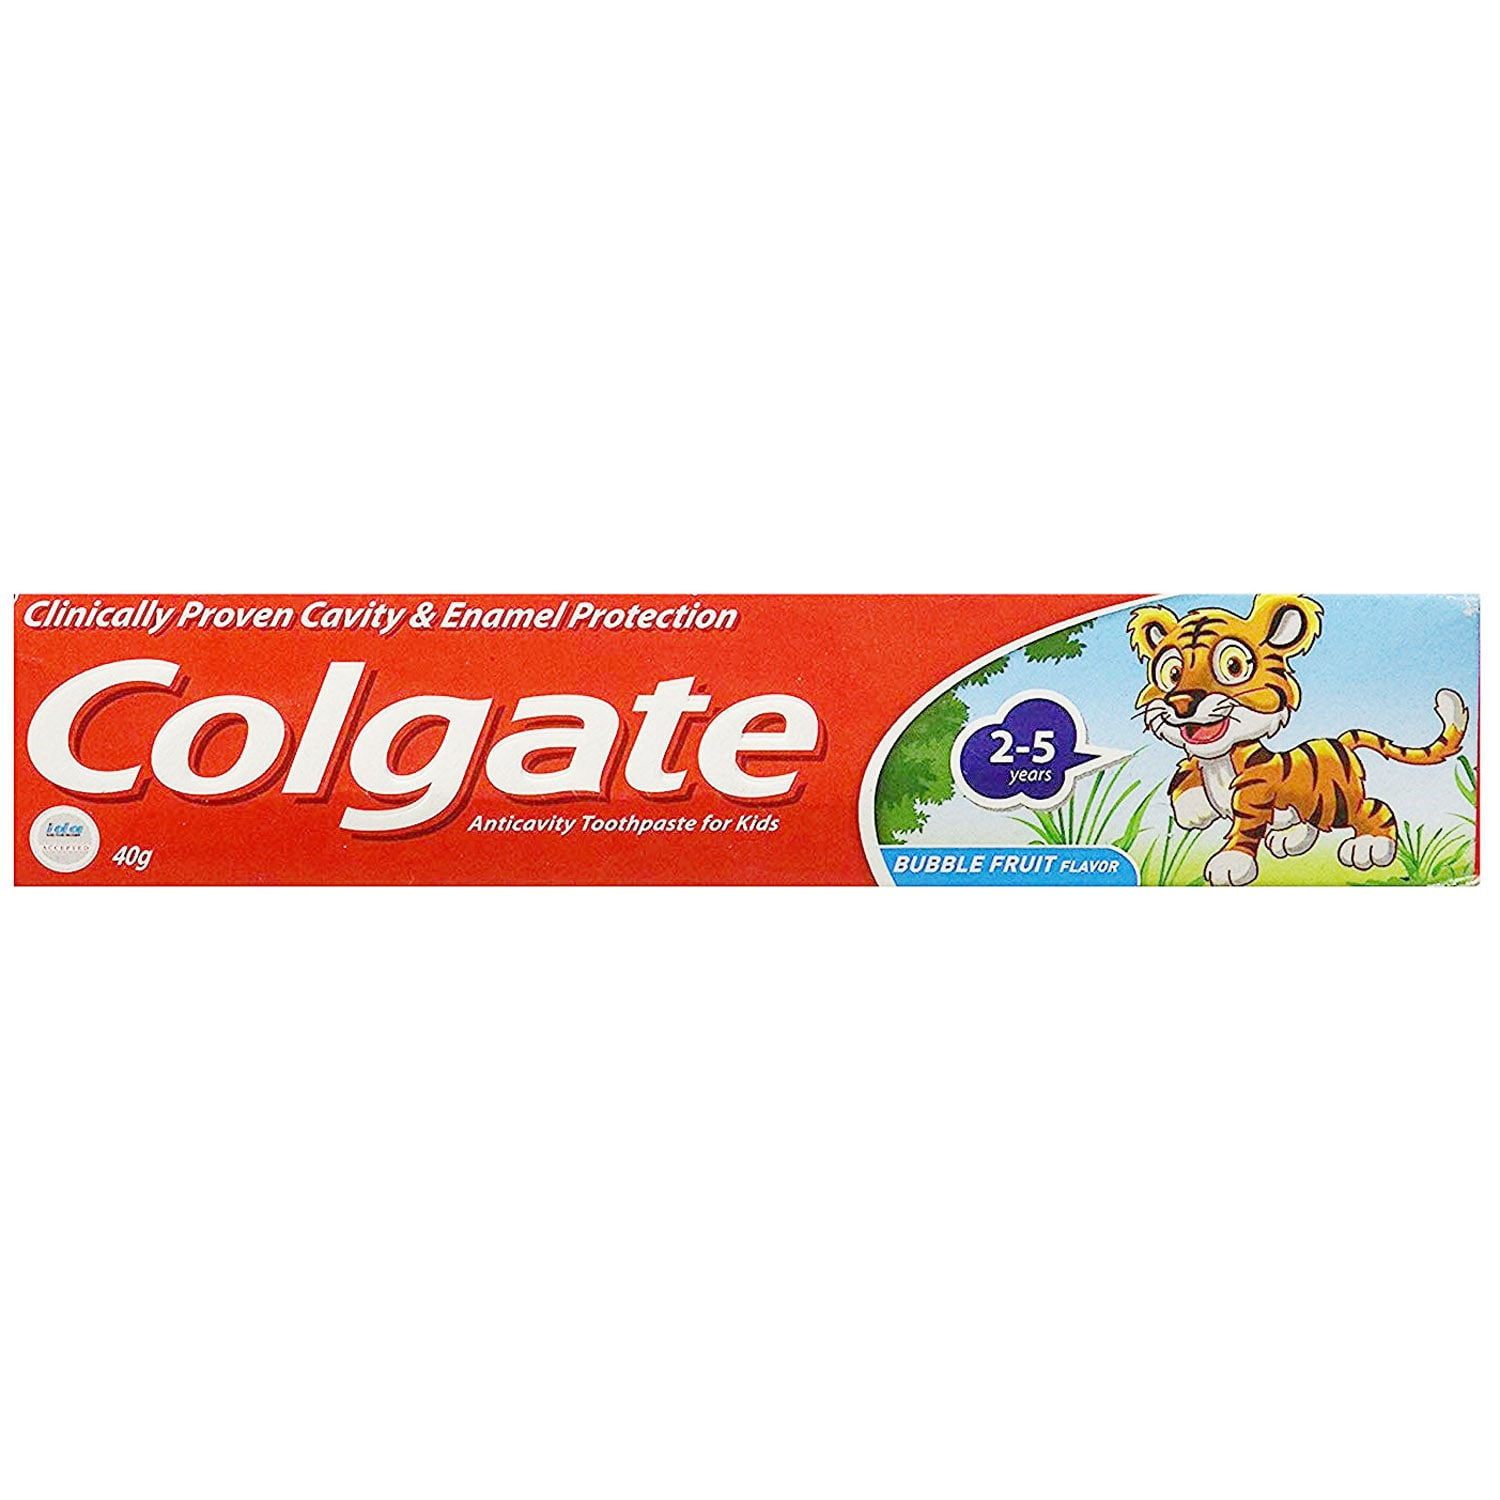 Colgate Bubble Fruit Flavoured Kids Toothpaste, 2 to 5 Years, 40 gm